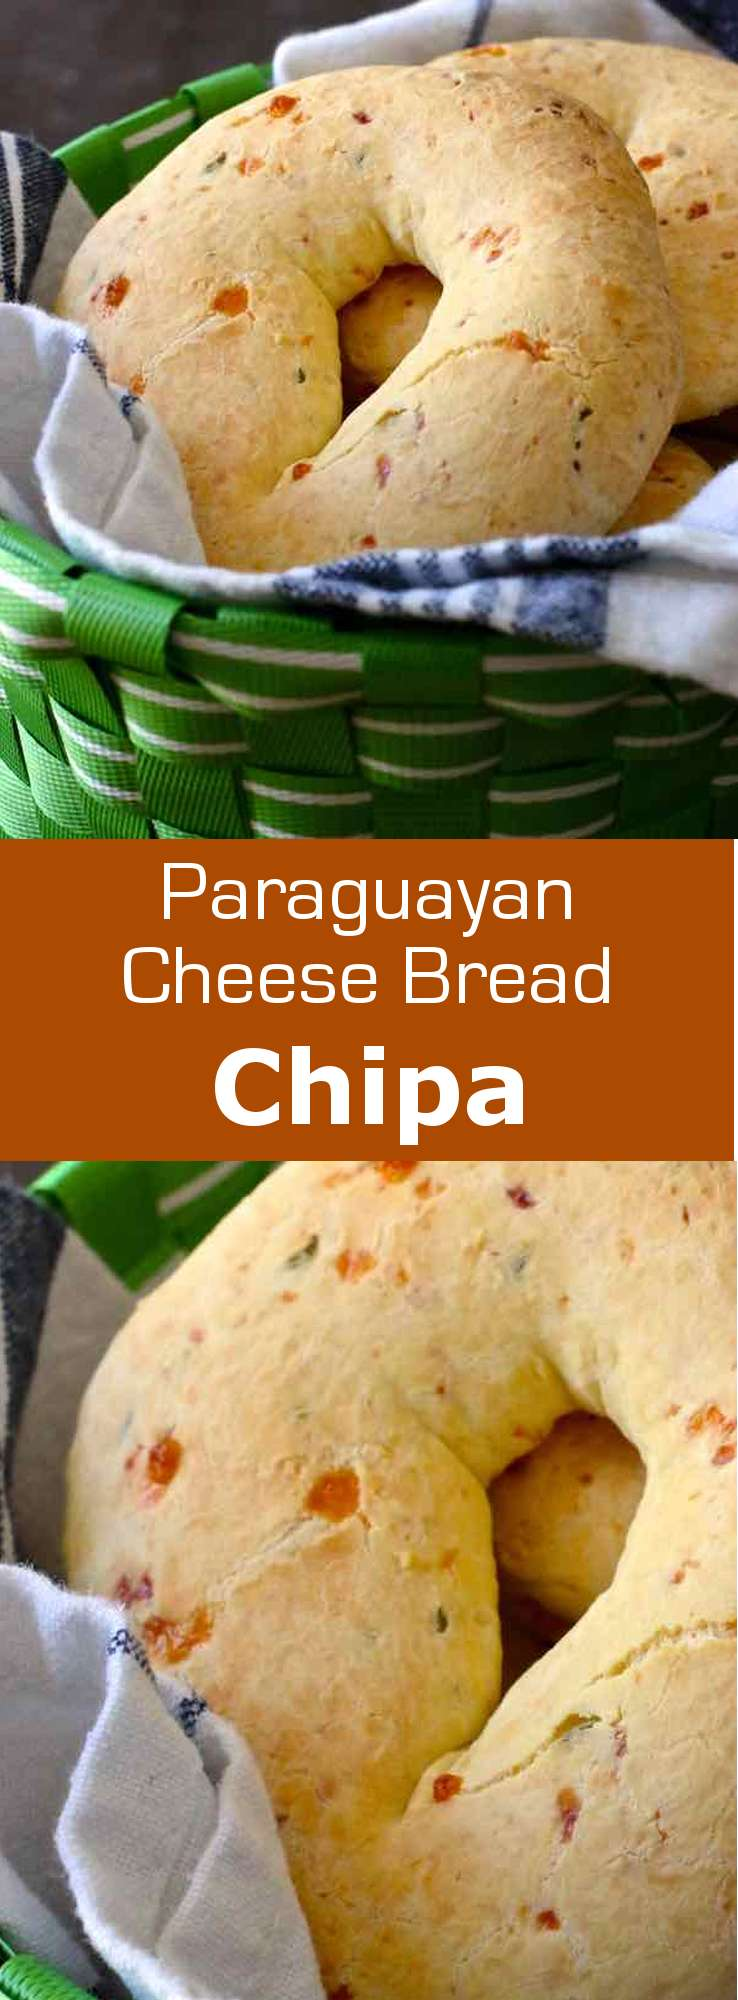 Chipa is a small traditional cheese bread from Paraguay, which is especially consumed during the Holy Week before Easter. Chipa argolla is the popular ring-shaped version. #Easter #Paraguay #Bread #196flavors